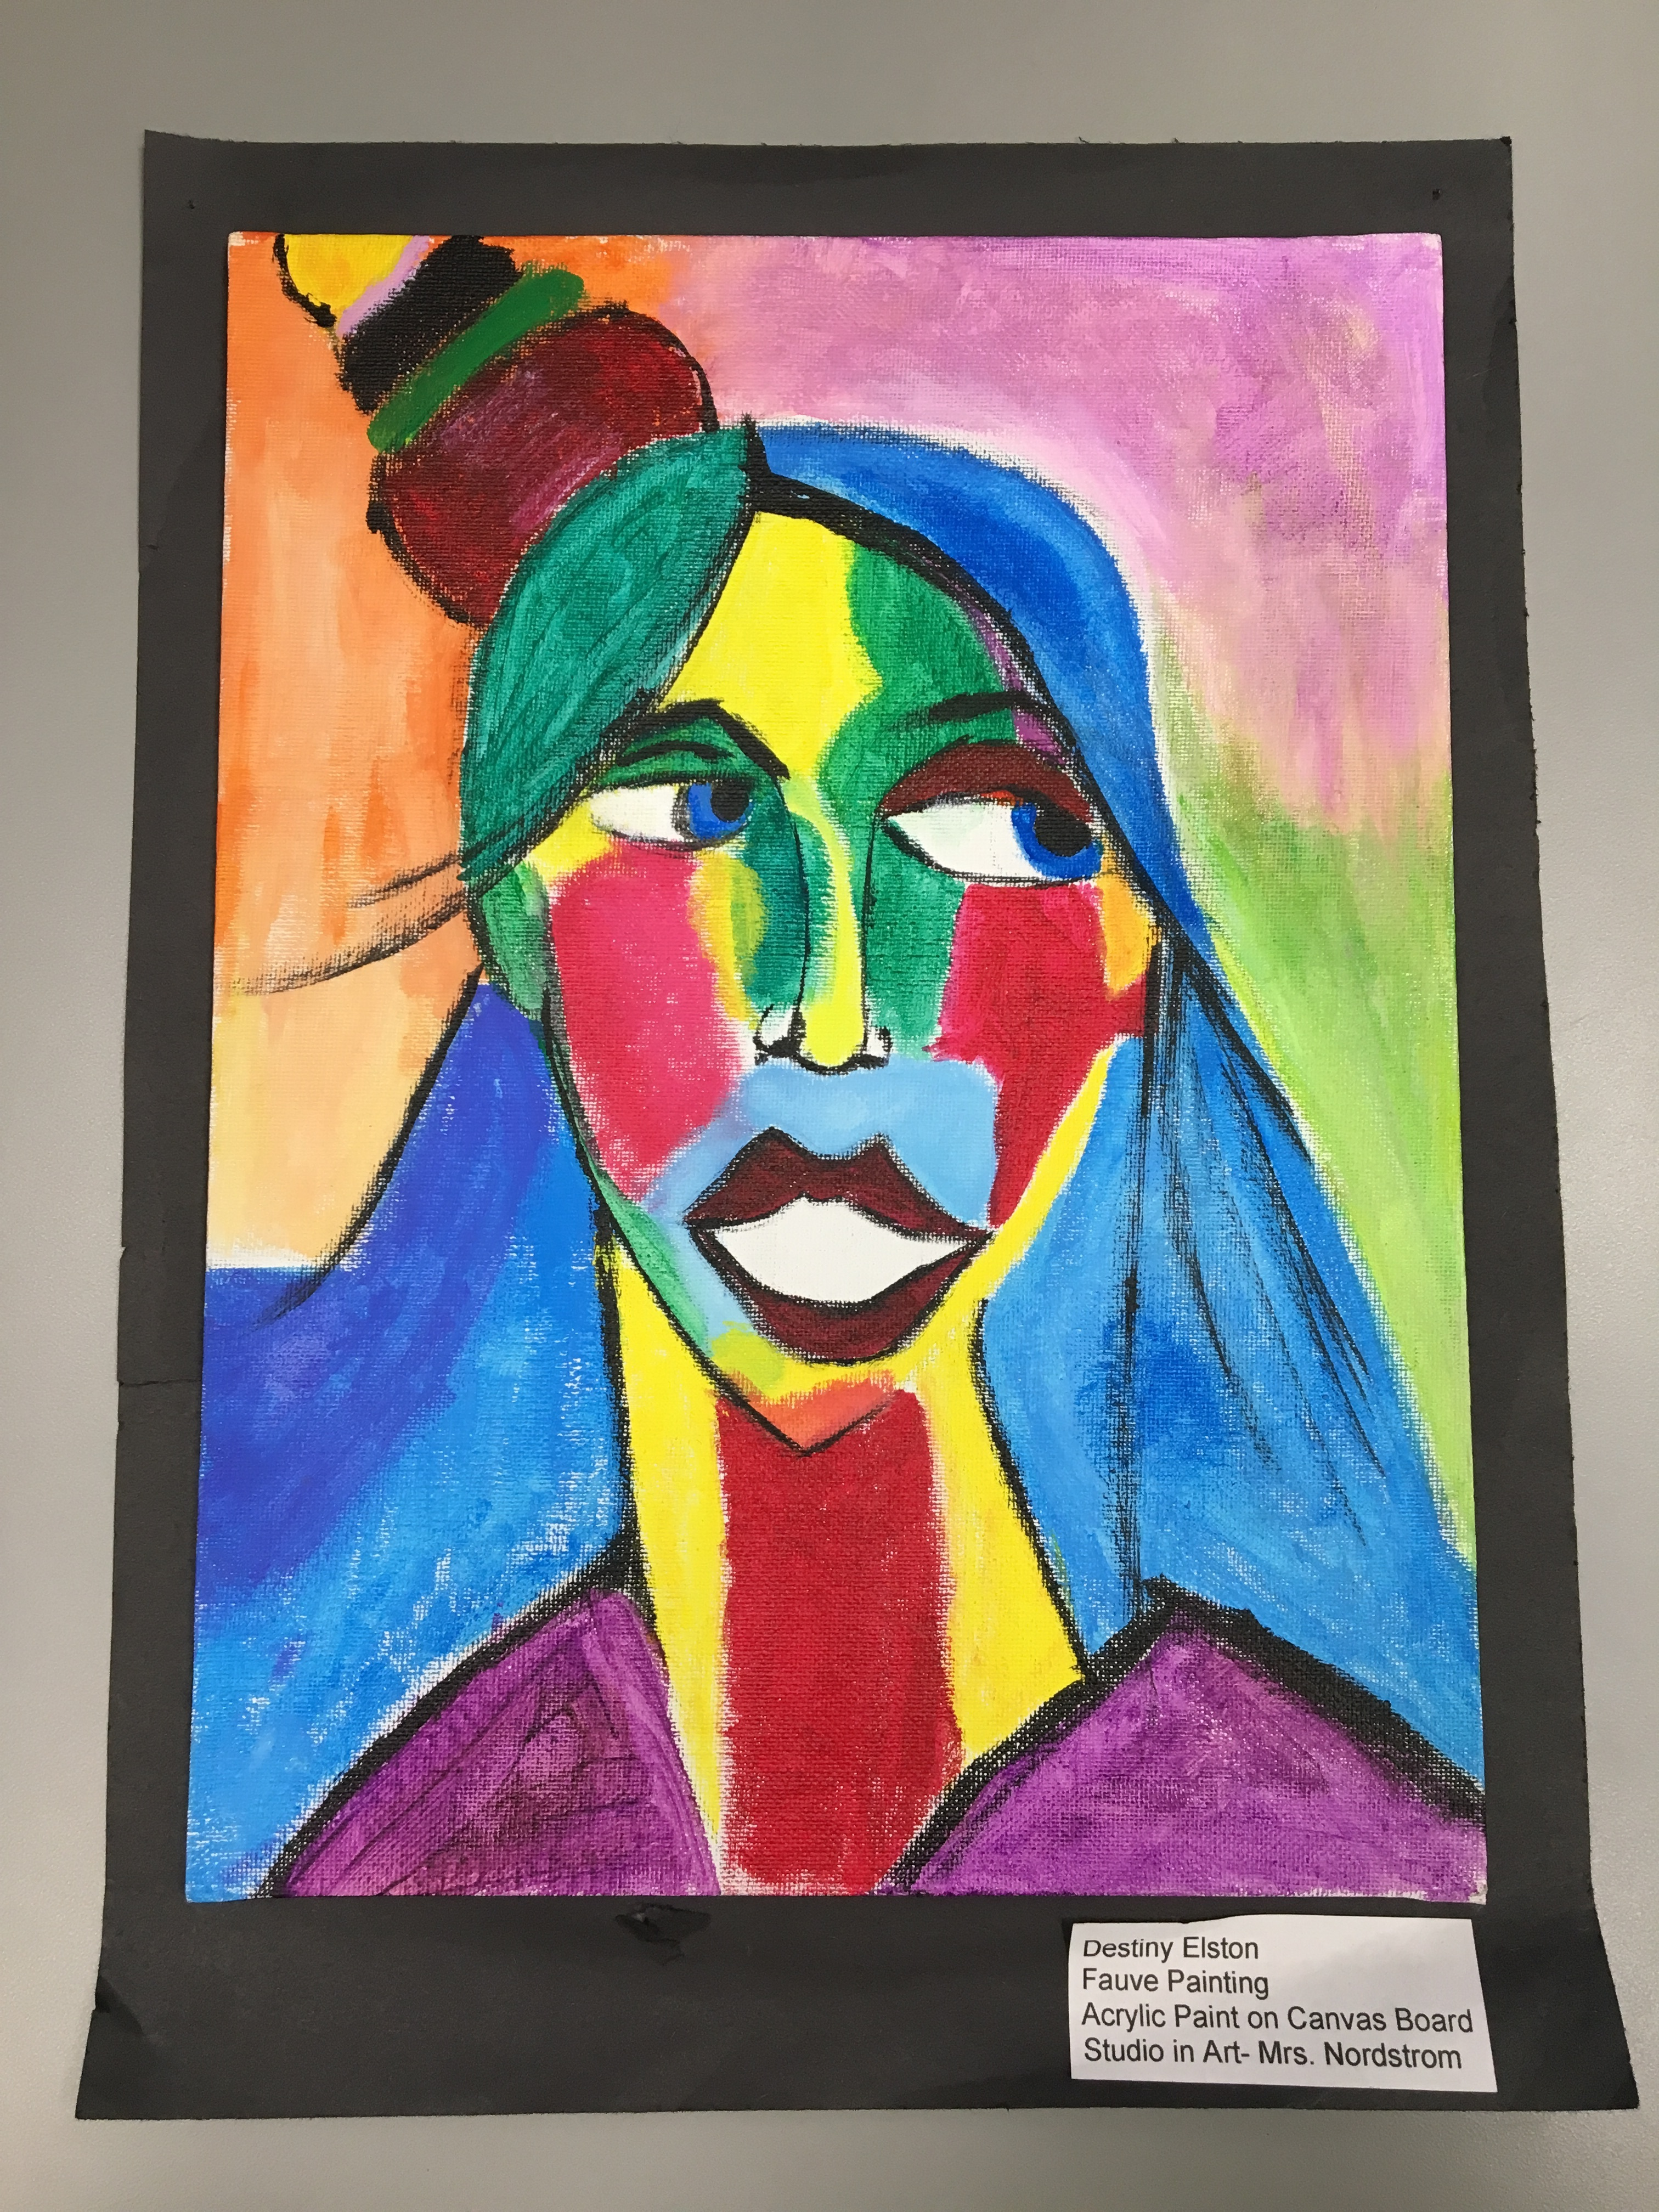 This acryllic paint on canvas was created by Destiny Elston. It is part of the exhibit in Cheektowaga that showcases student artists.